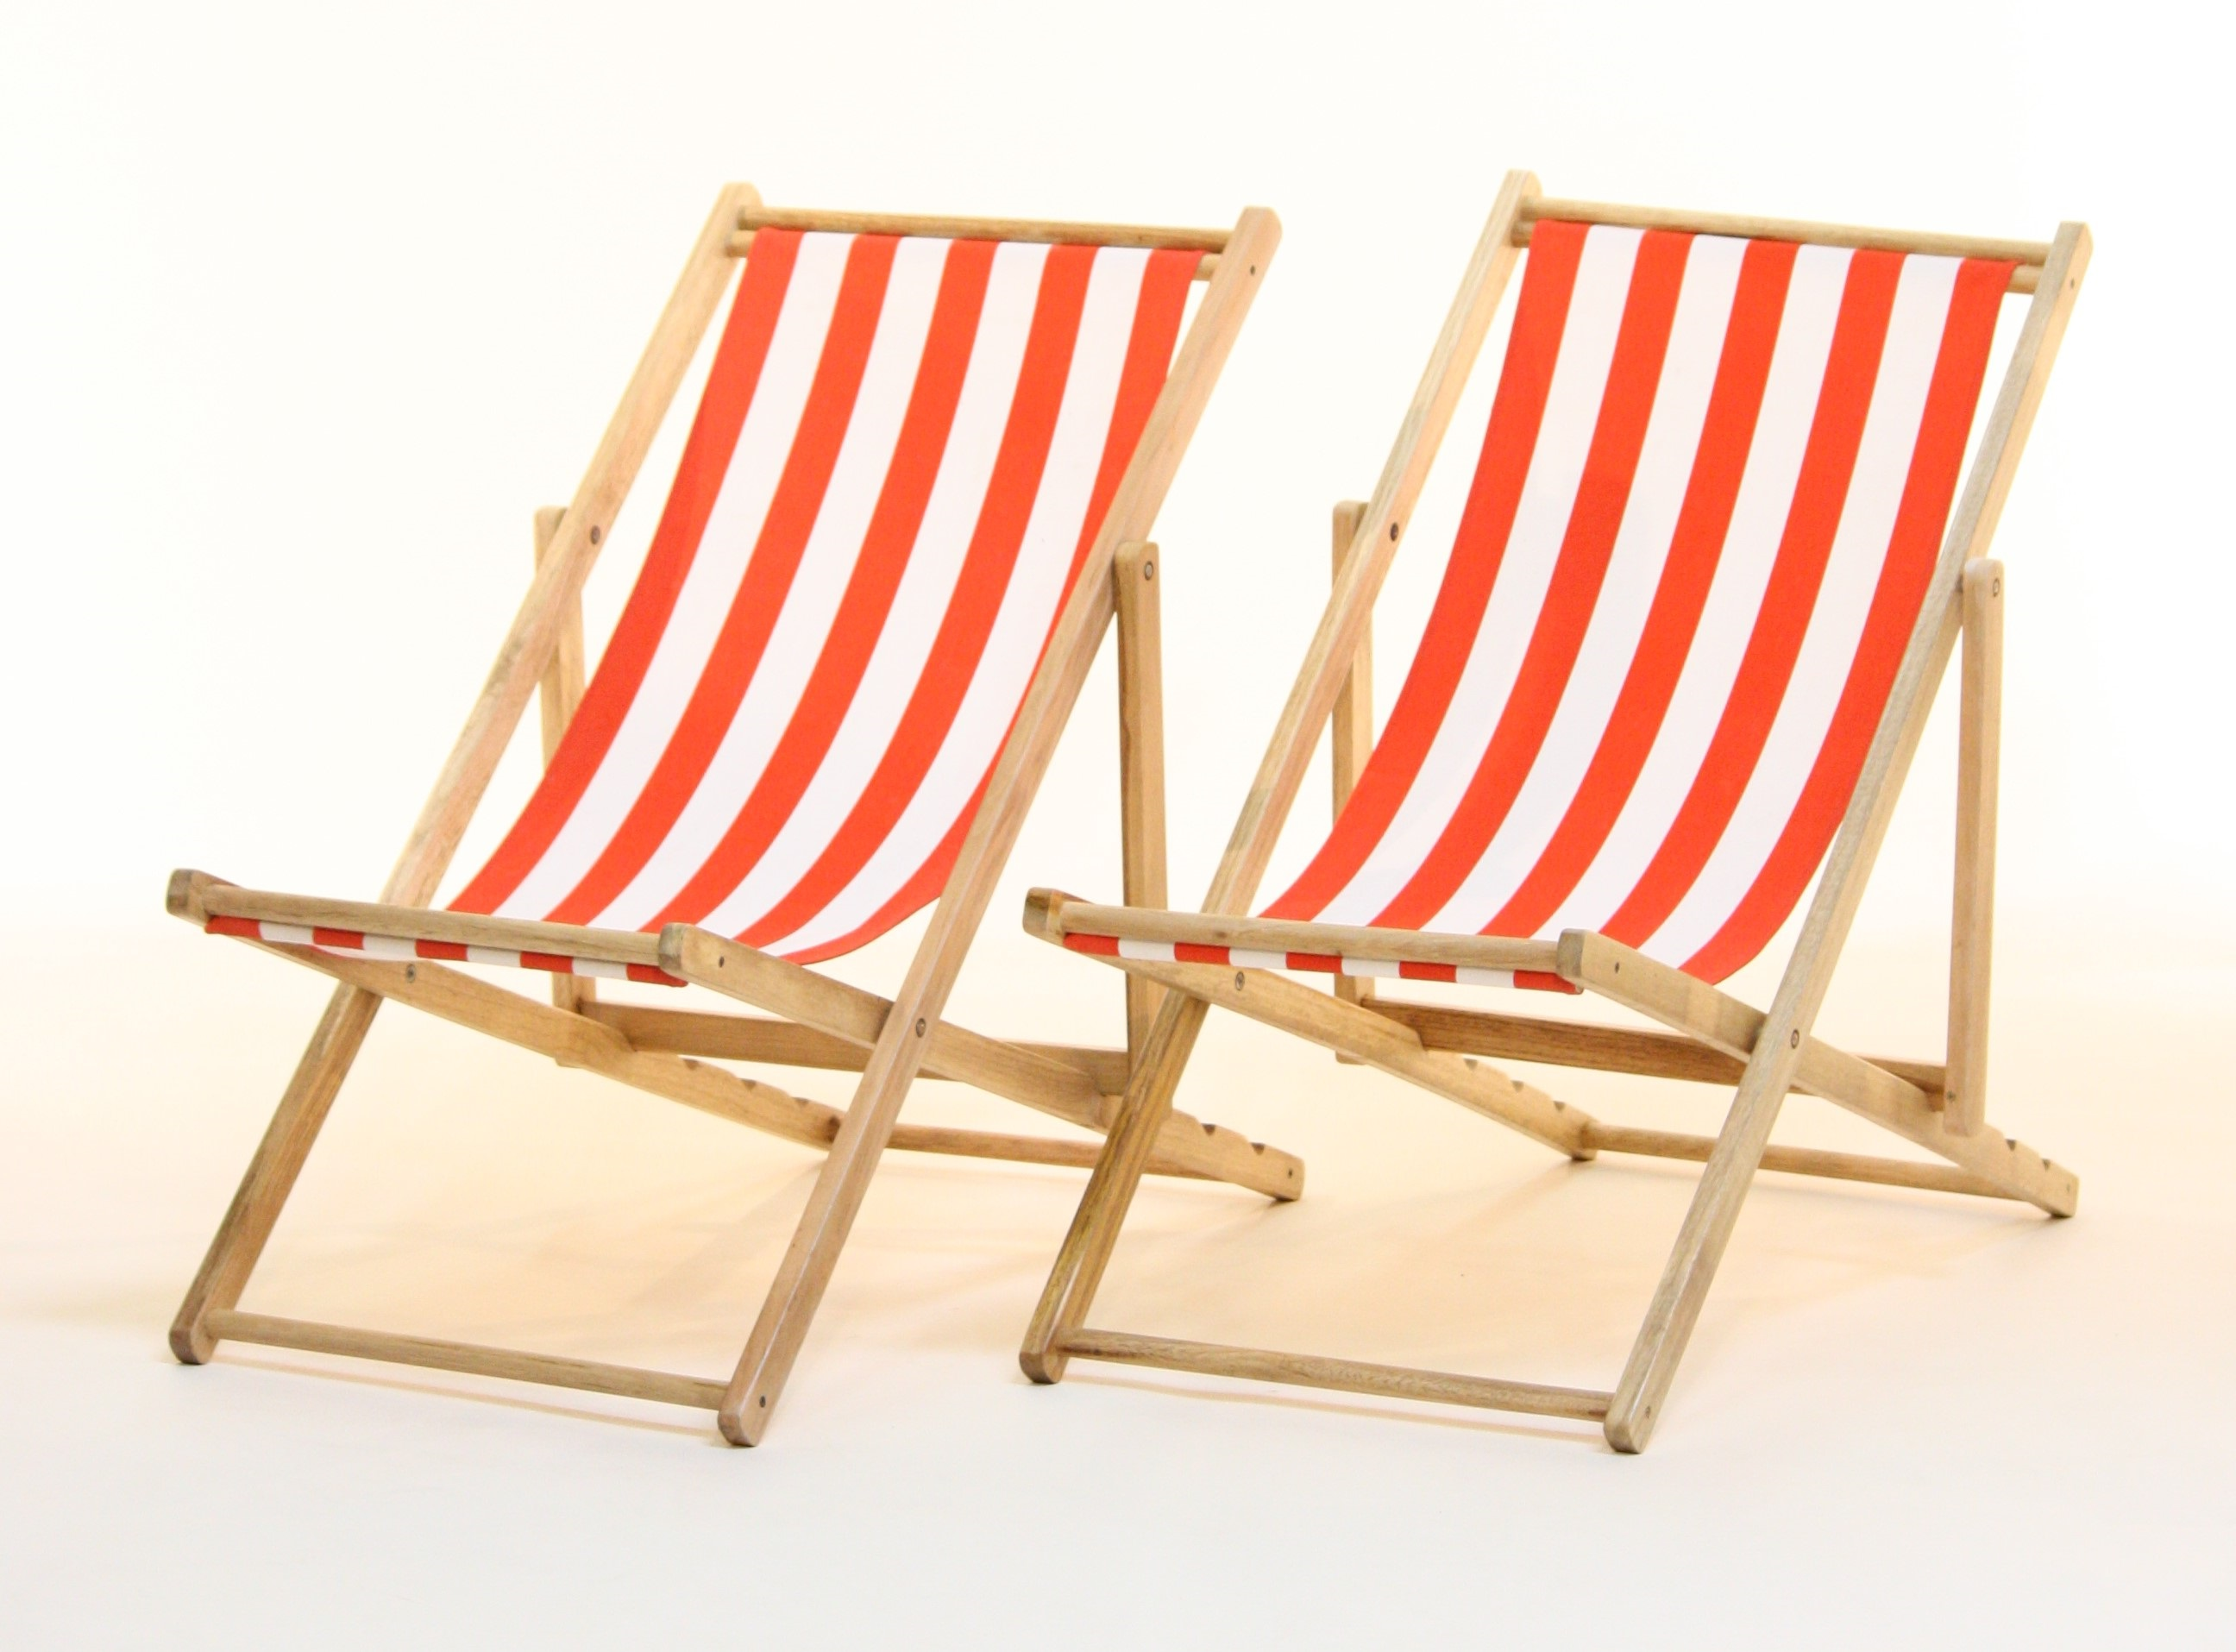 deck chair images argos toddler seat croydedeckchaircinema co uk is an easy to use website for finding places visit with your family all over the